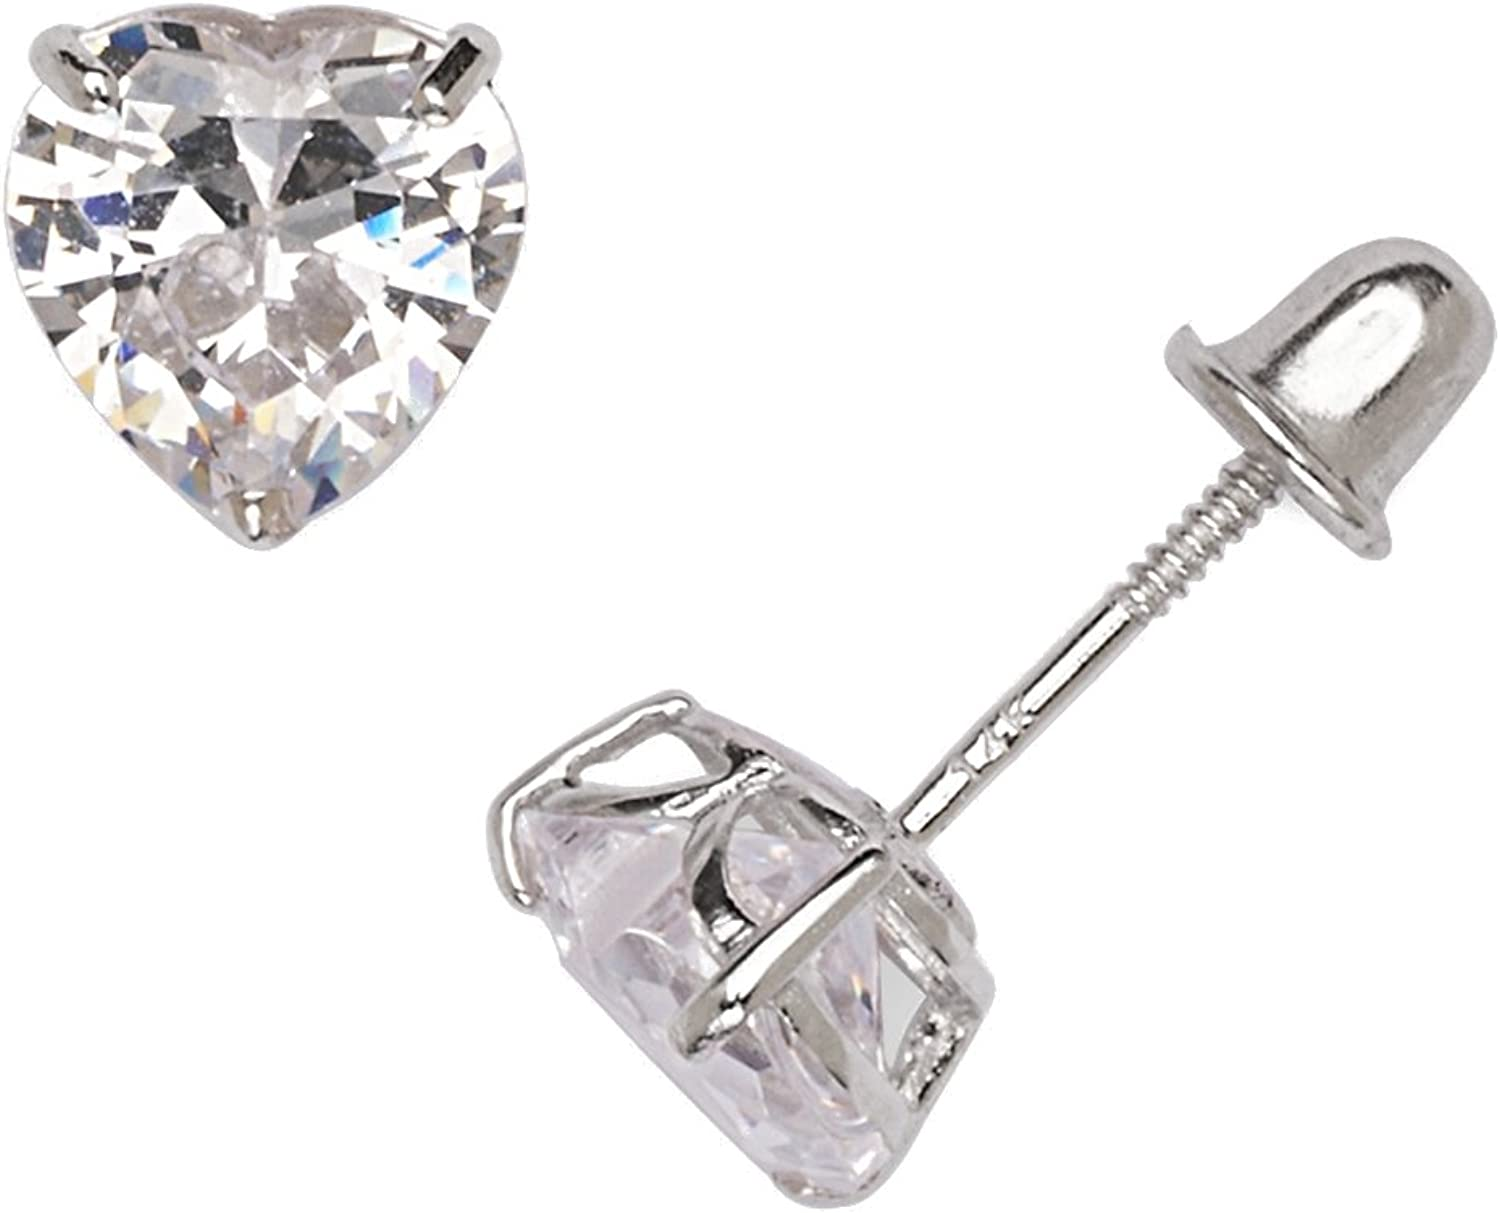 Details about  /14K Solid Yellow and White Gold CZ Bezel Heart Shape Stud Earrings  **